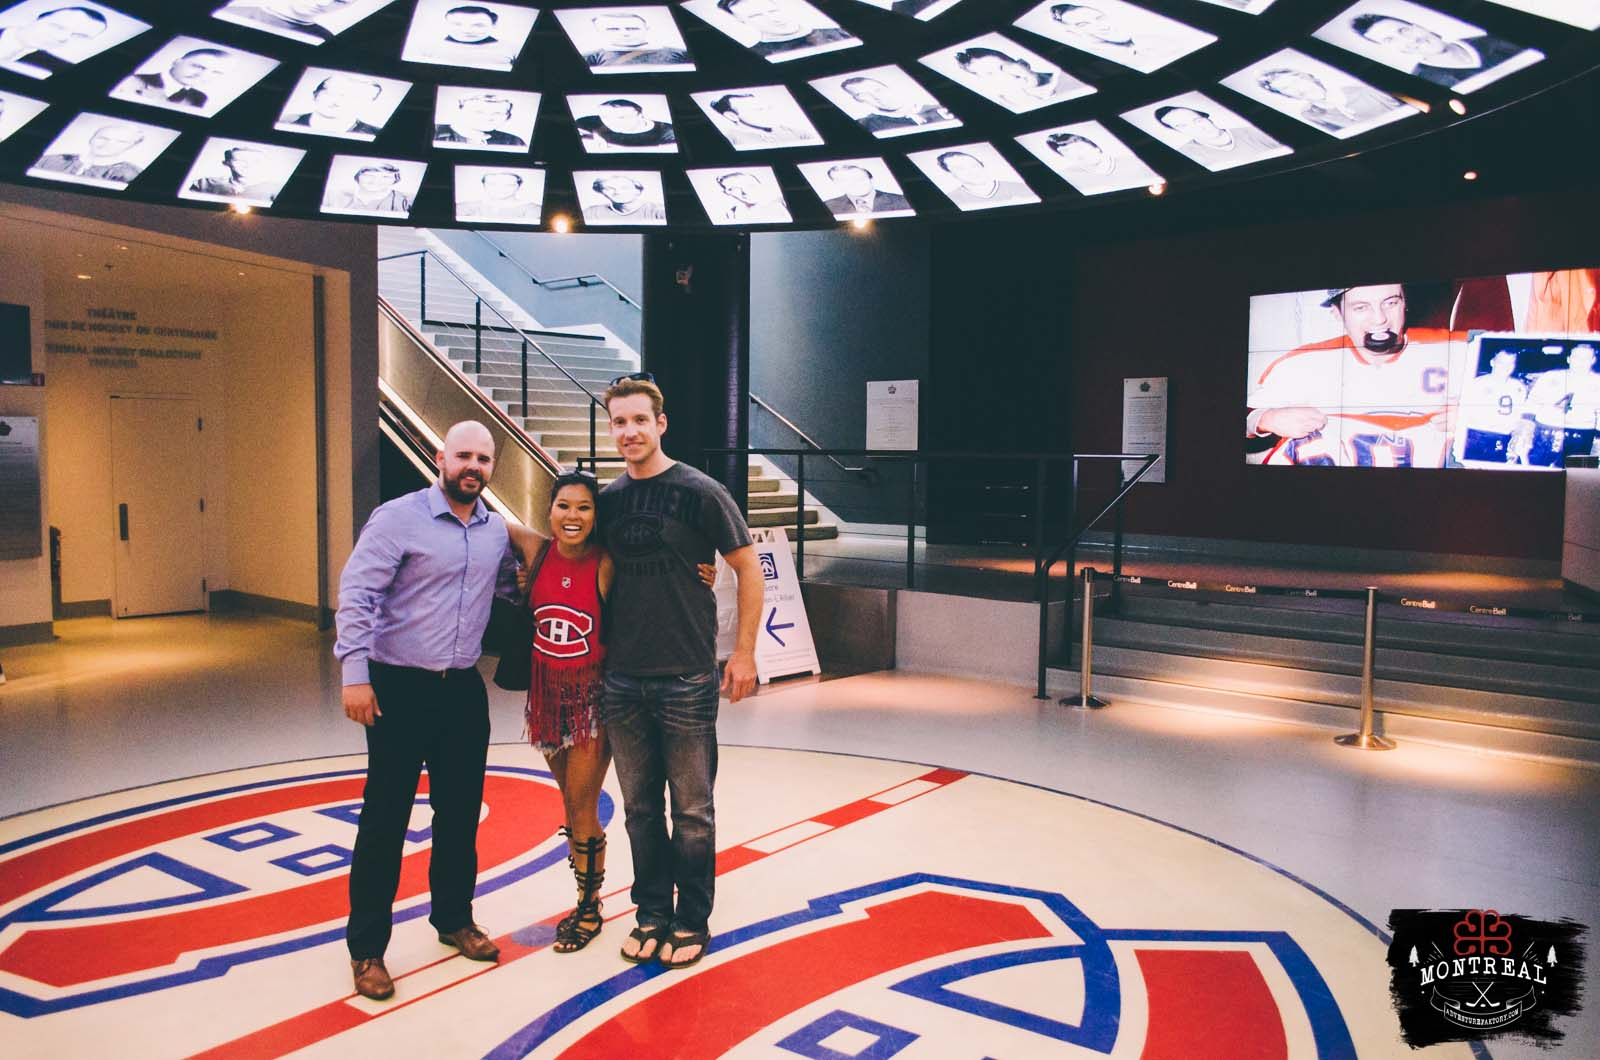 Thank you to the Habs organization, Jon & Jo and Alexandre to arrange us the last minute visit!